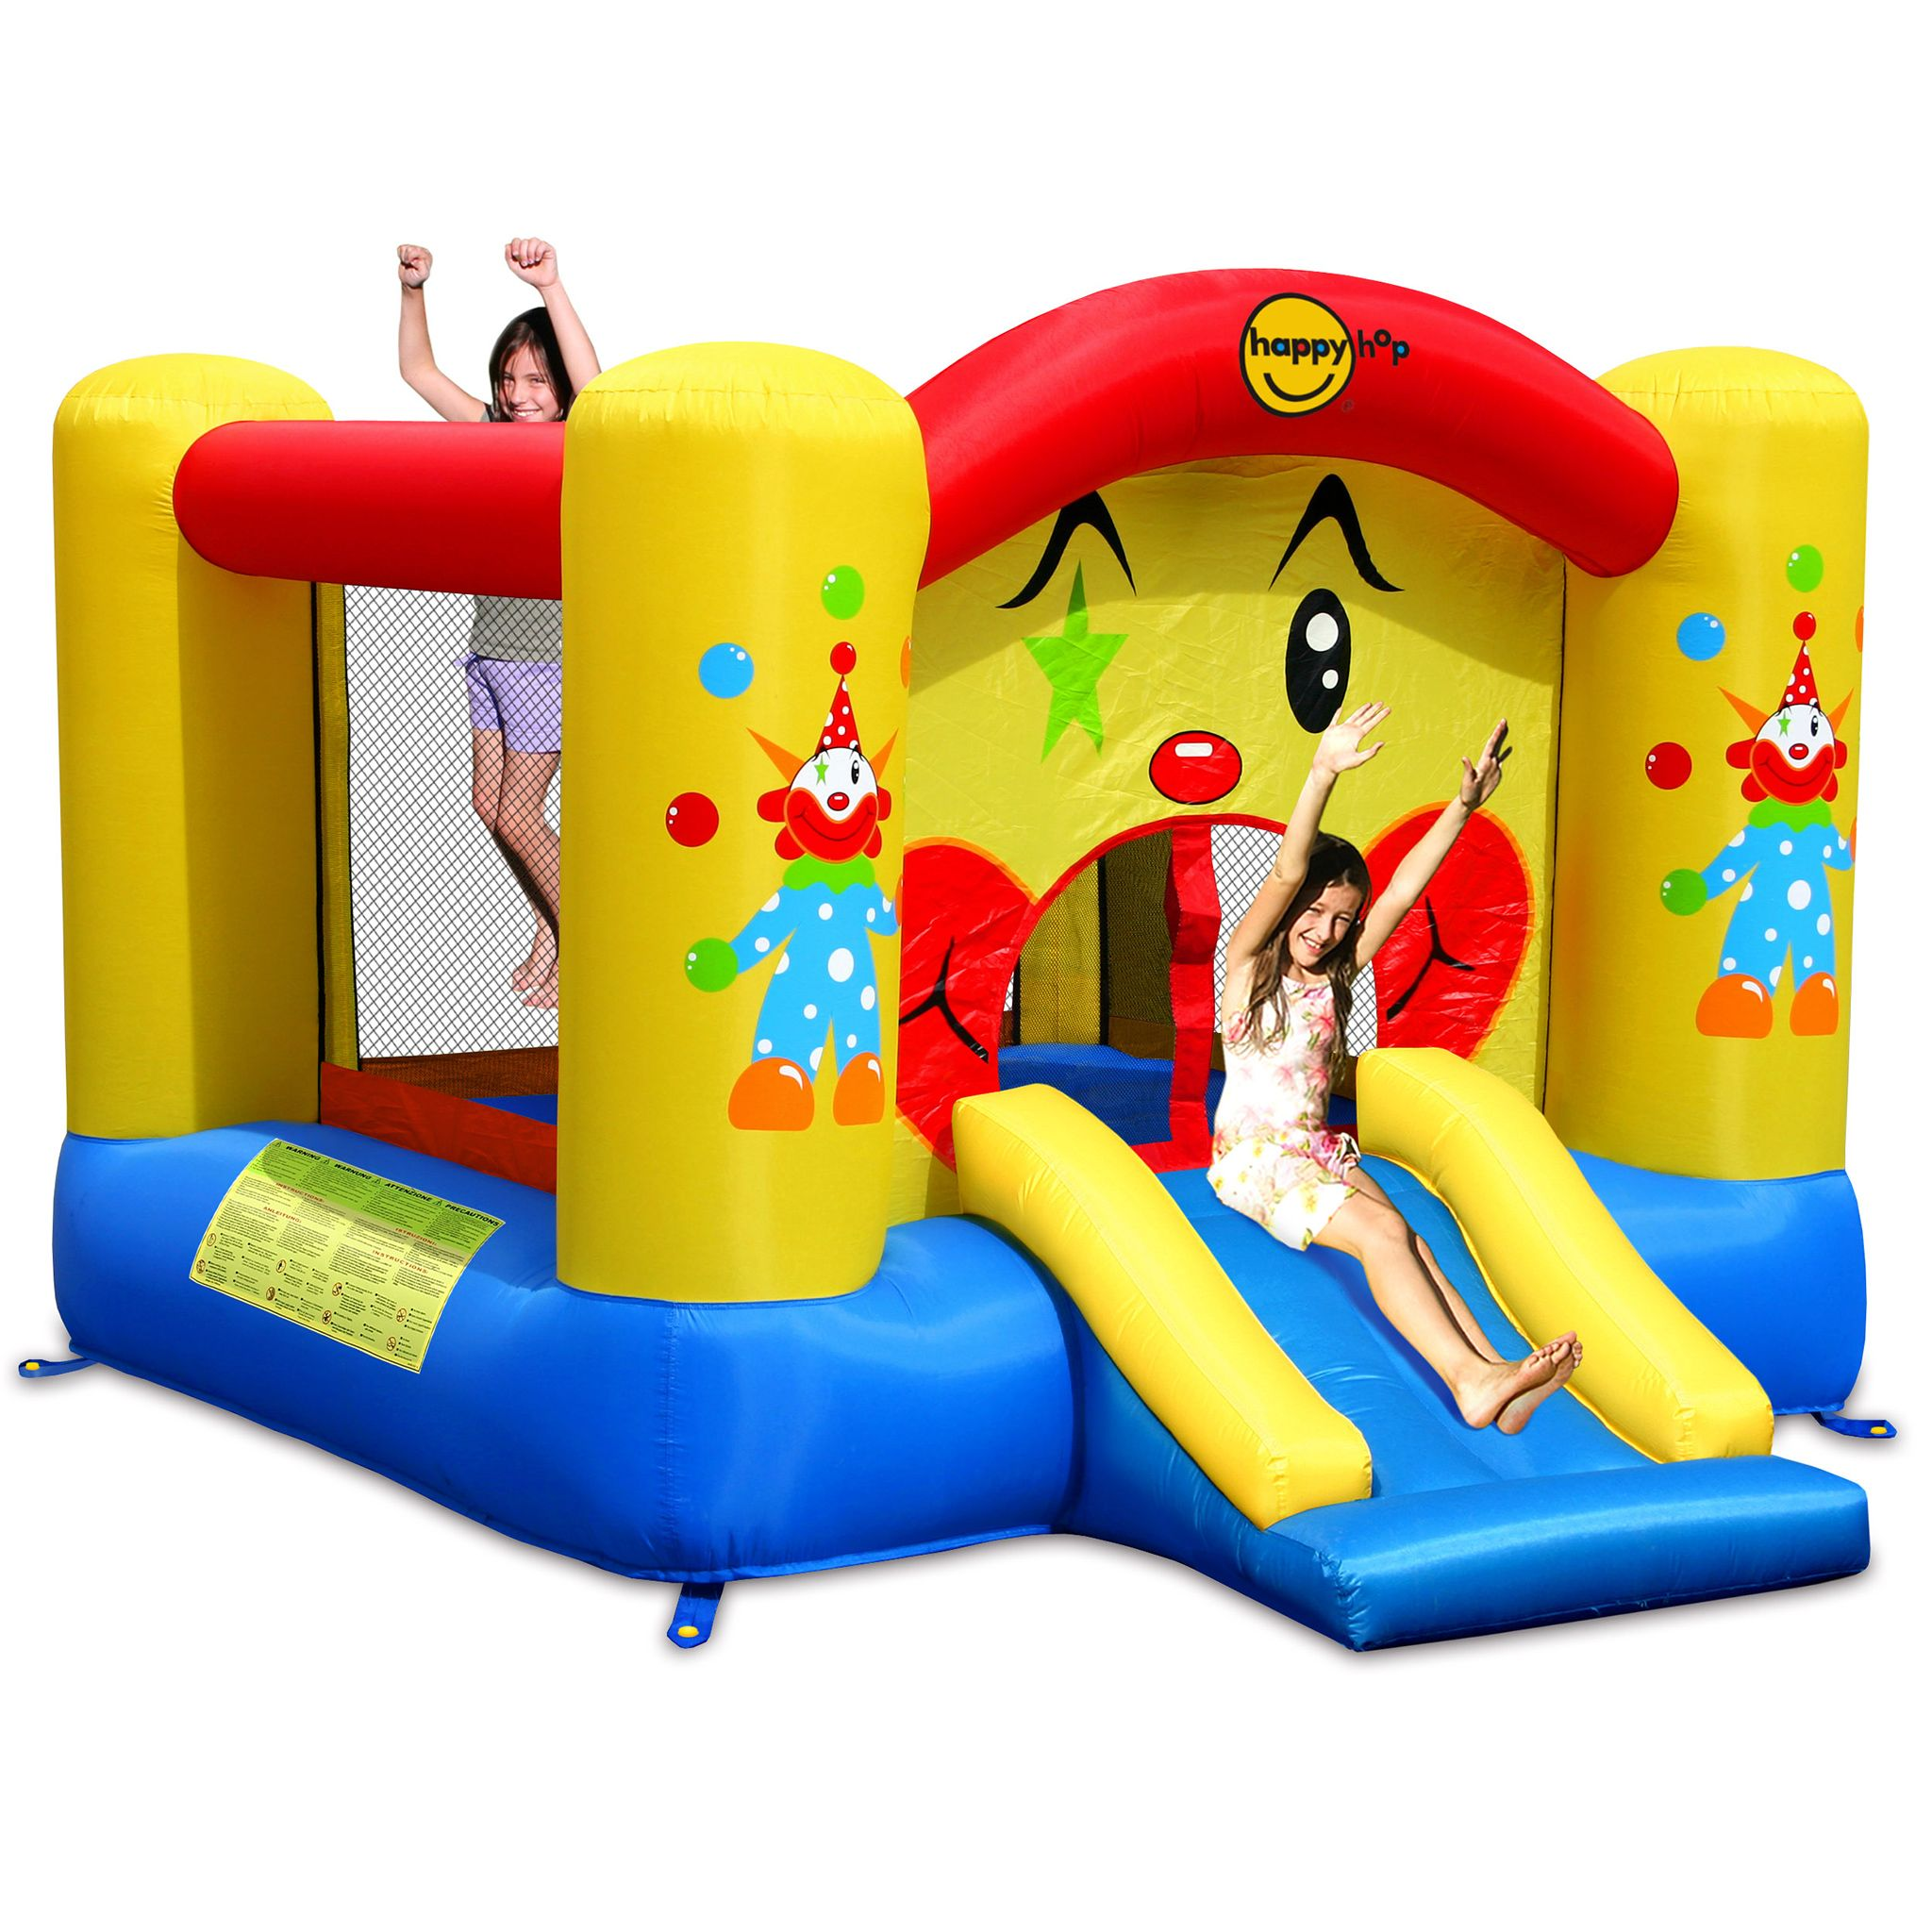 Happy Hop - Clown Slide and Hoop Bouncer (9201)